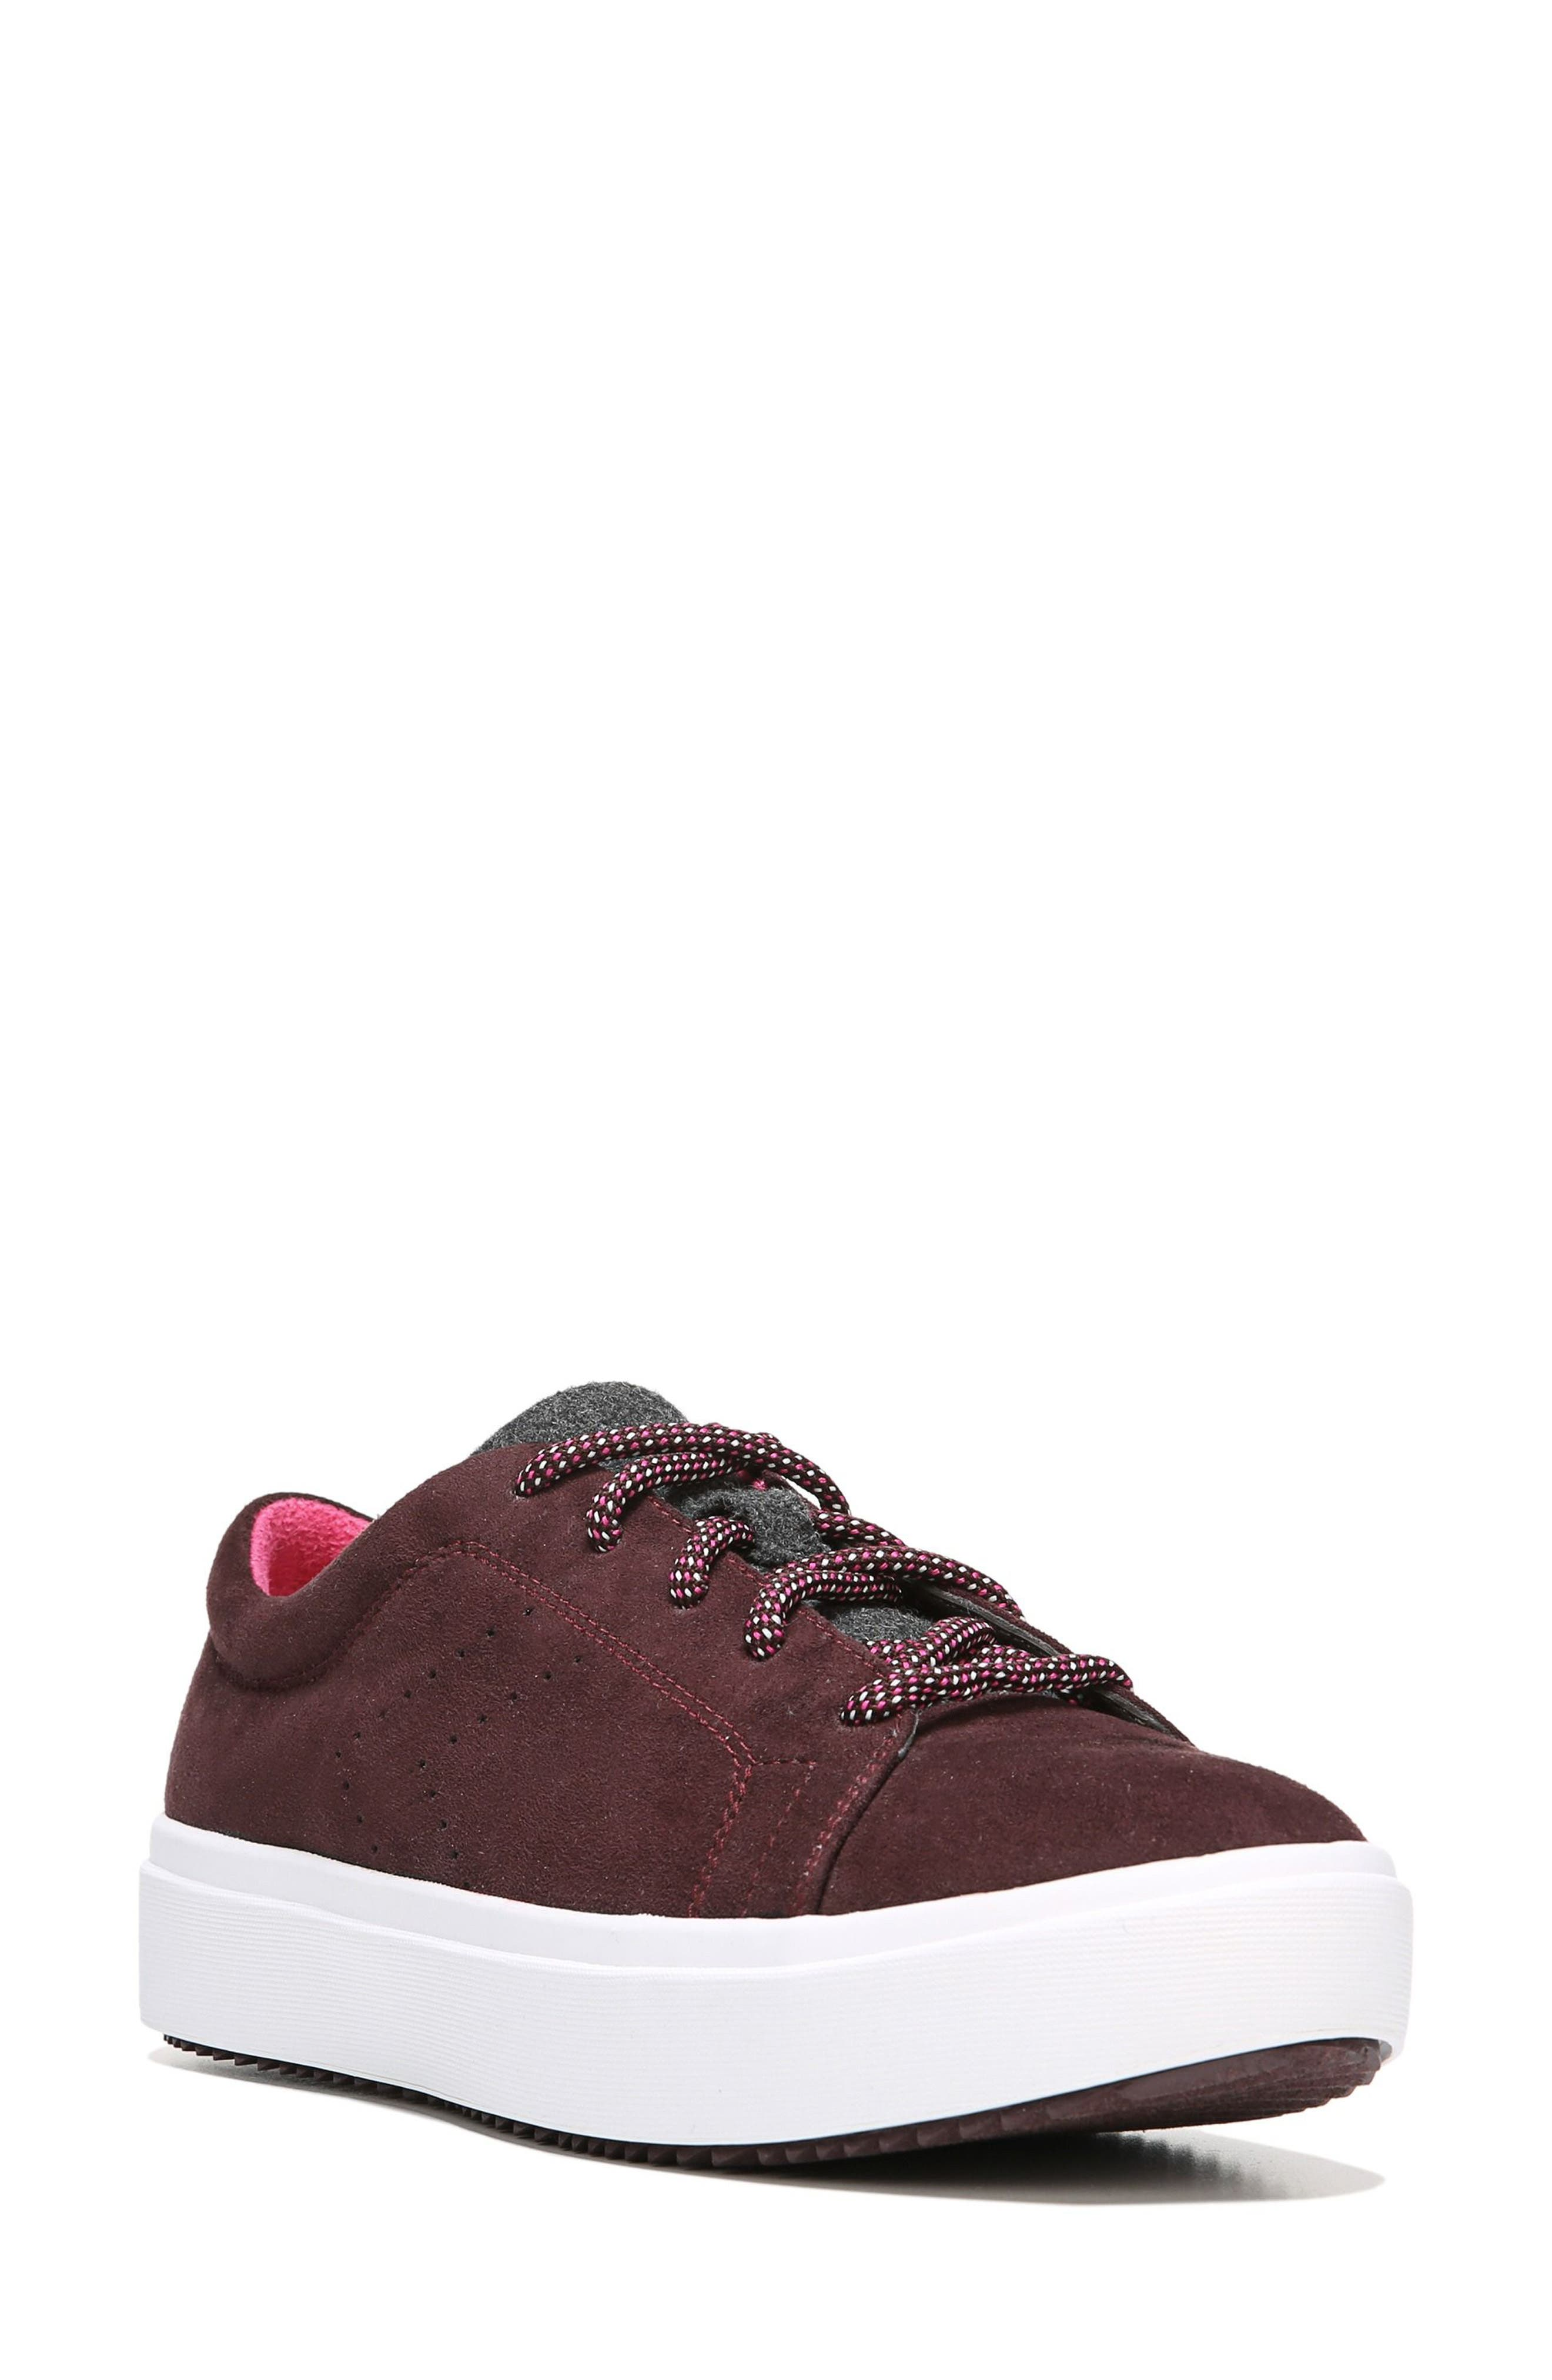 Wander Sneaker,                         Main,                         color, Merlot Fabric